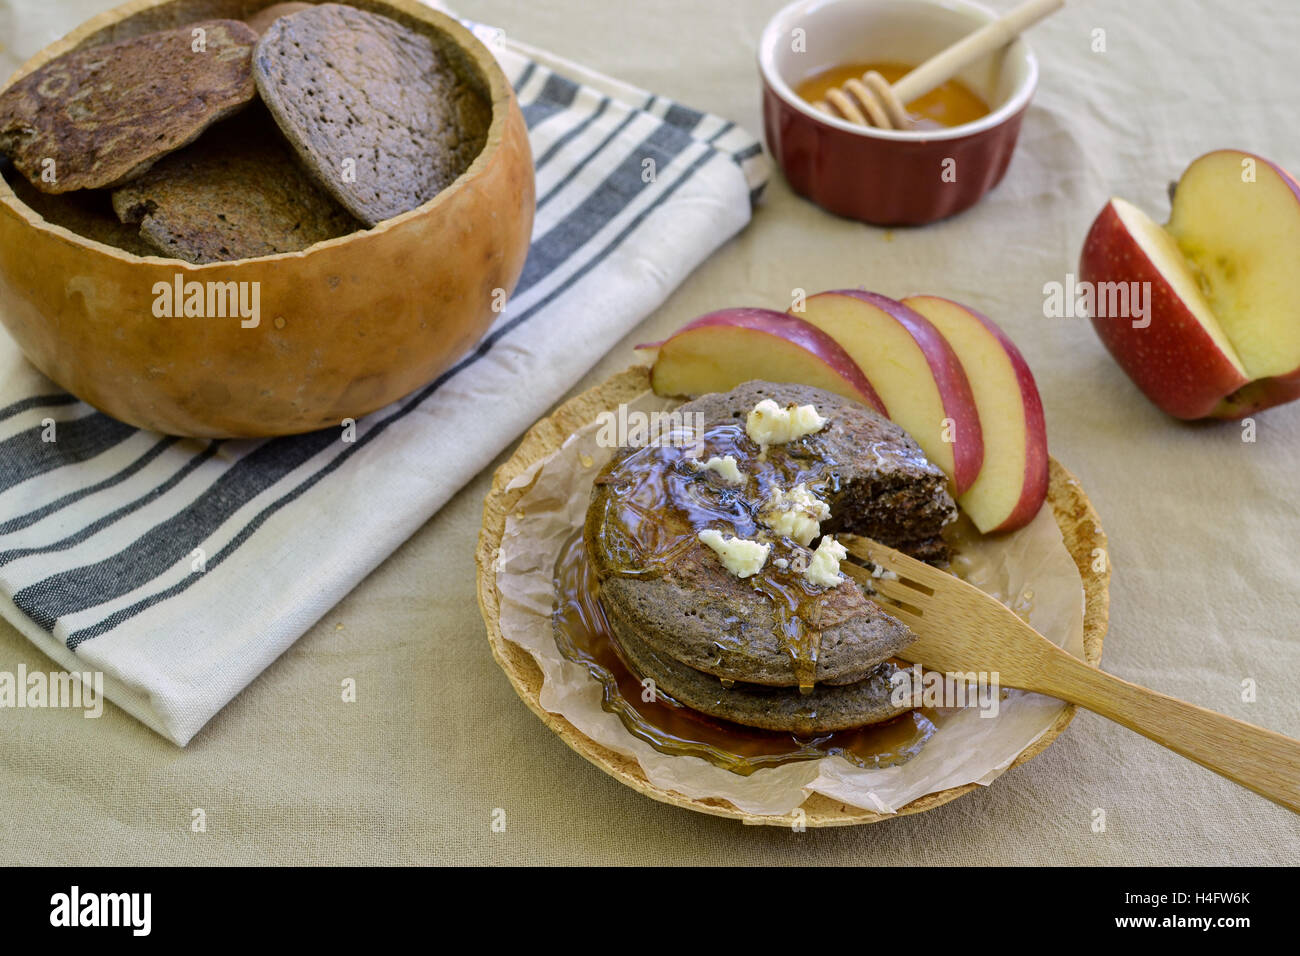 Rustic meal of buckwheat pancakes in plate and bowl made of gourds, on flower sac tablecloth, accompanied by maple - Stock Image